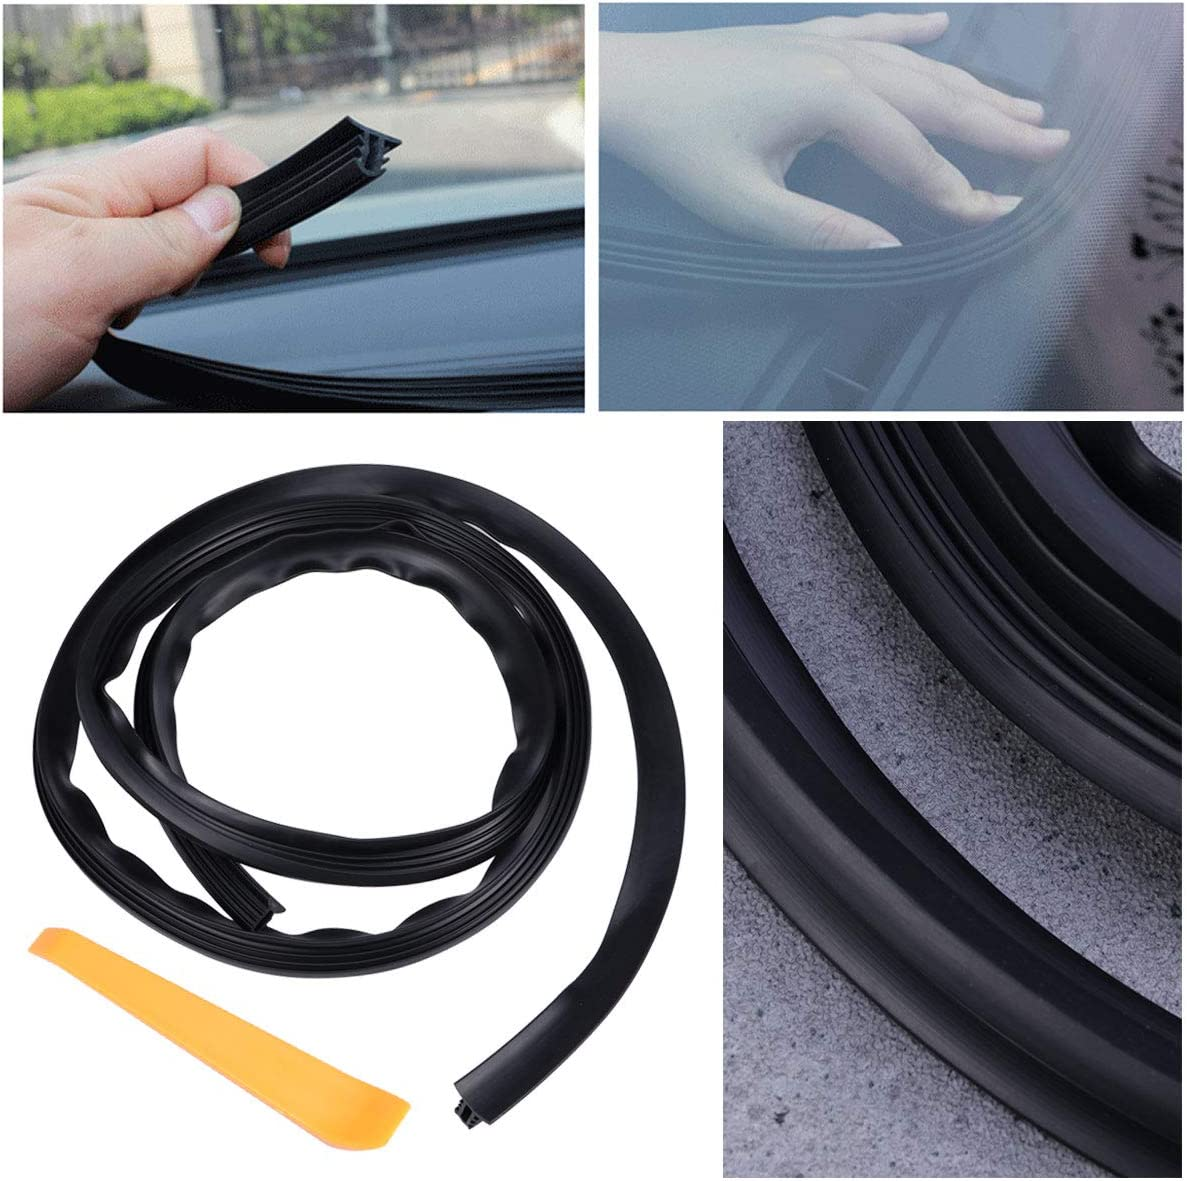 Black VOSAREA 1.6 Meters Auto Windshield Trim Seal Strip Line DIY Decoration Flexible Gap Filler with Tool